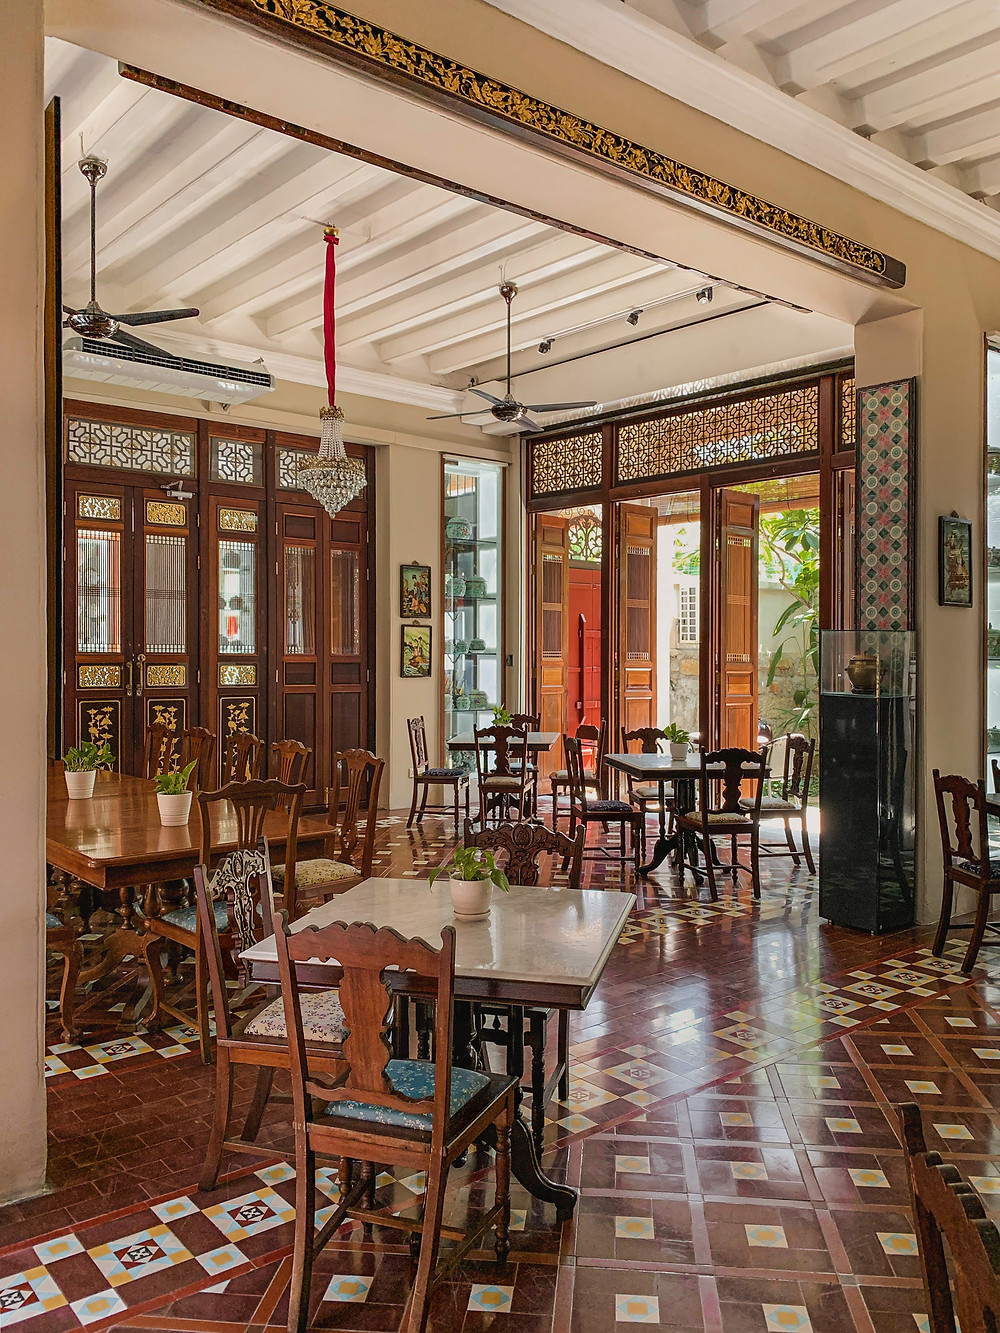 Heritage Peranakan furniture and interior styling of Seven Terraces Hotel breakfast room, photography by RollingBear Travels.